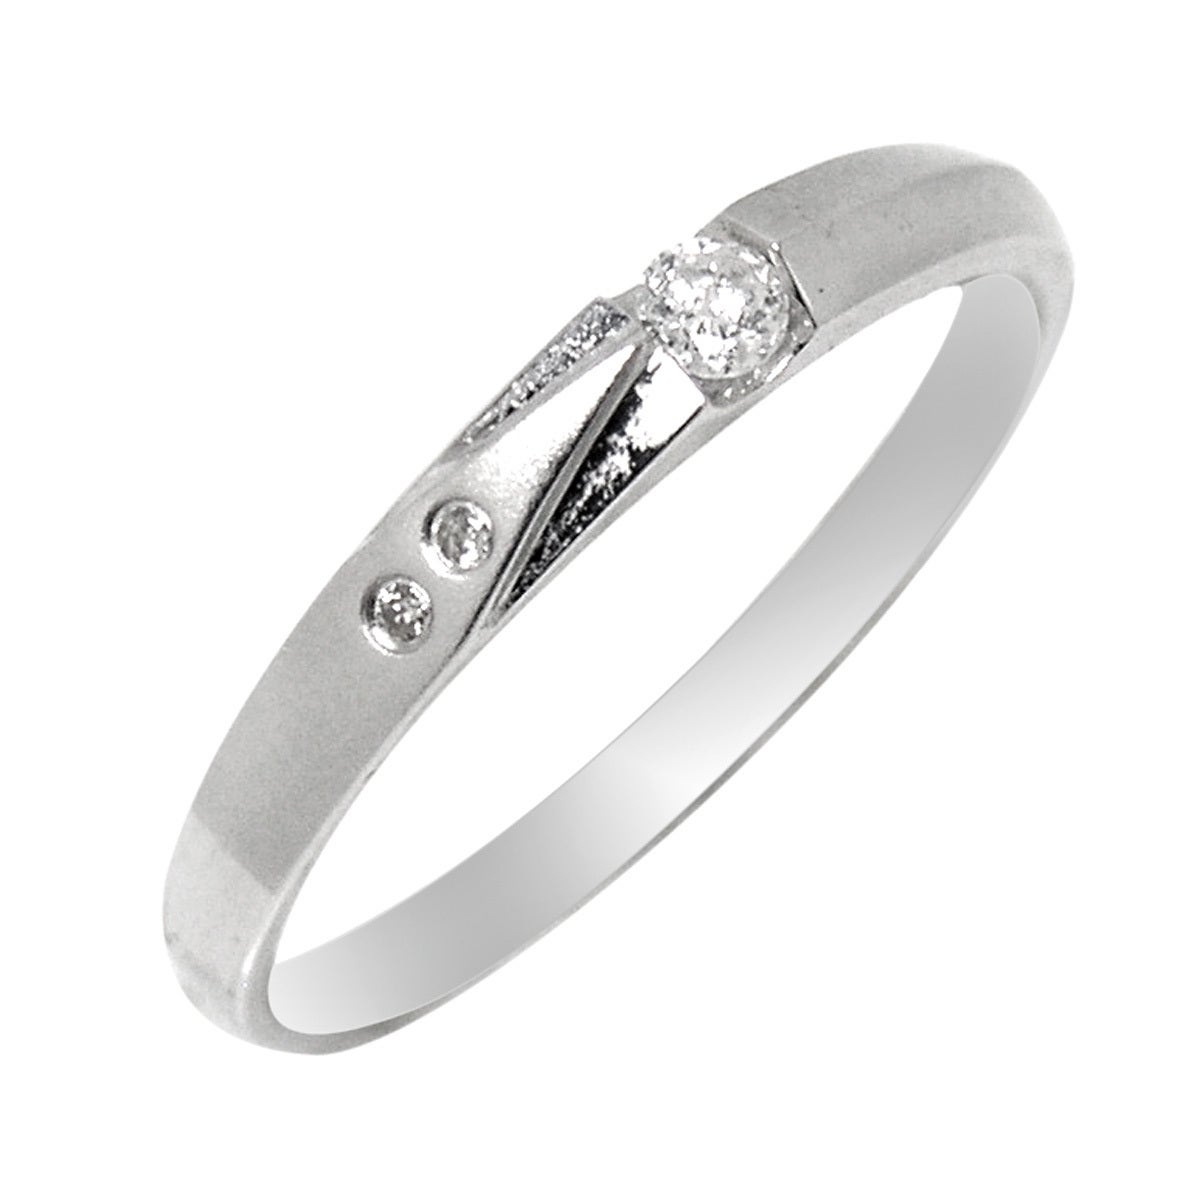 De Buman 18K White Gold Channel Set Diamond Accent Band Ring Regarding Latest Diamond Accent Channel Anniversary Bands In White Gold (View 15 of 25)